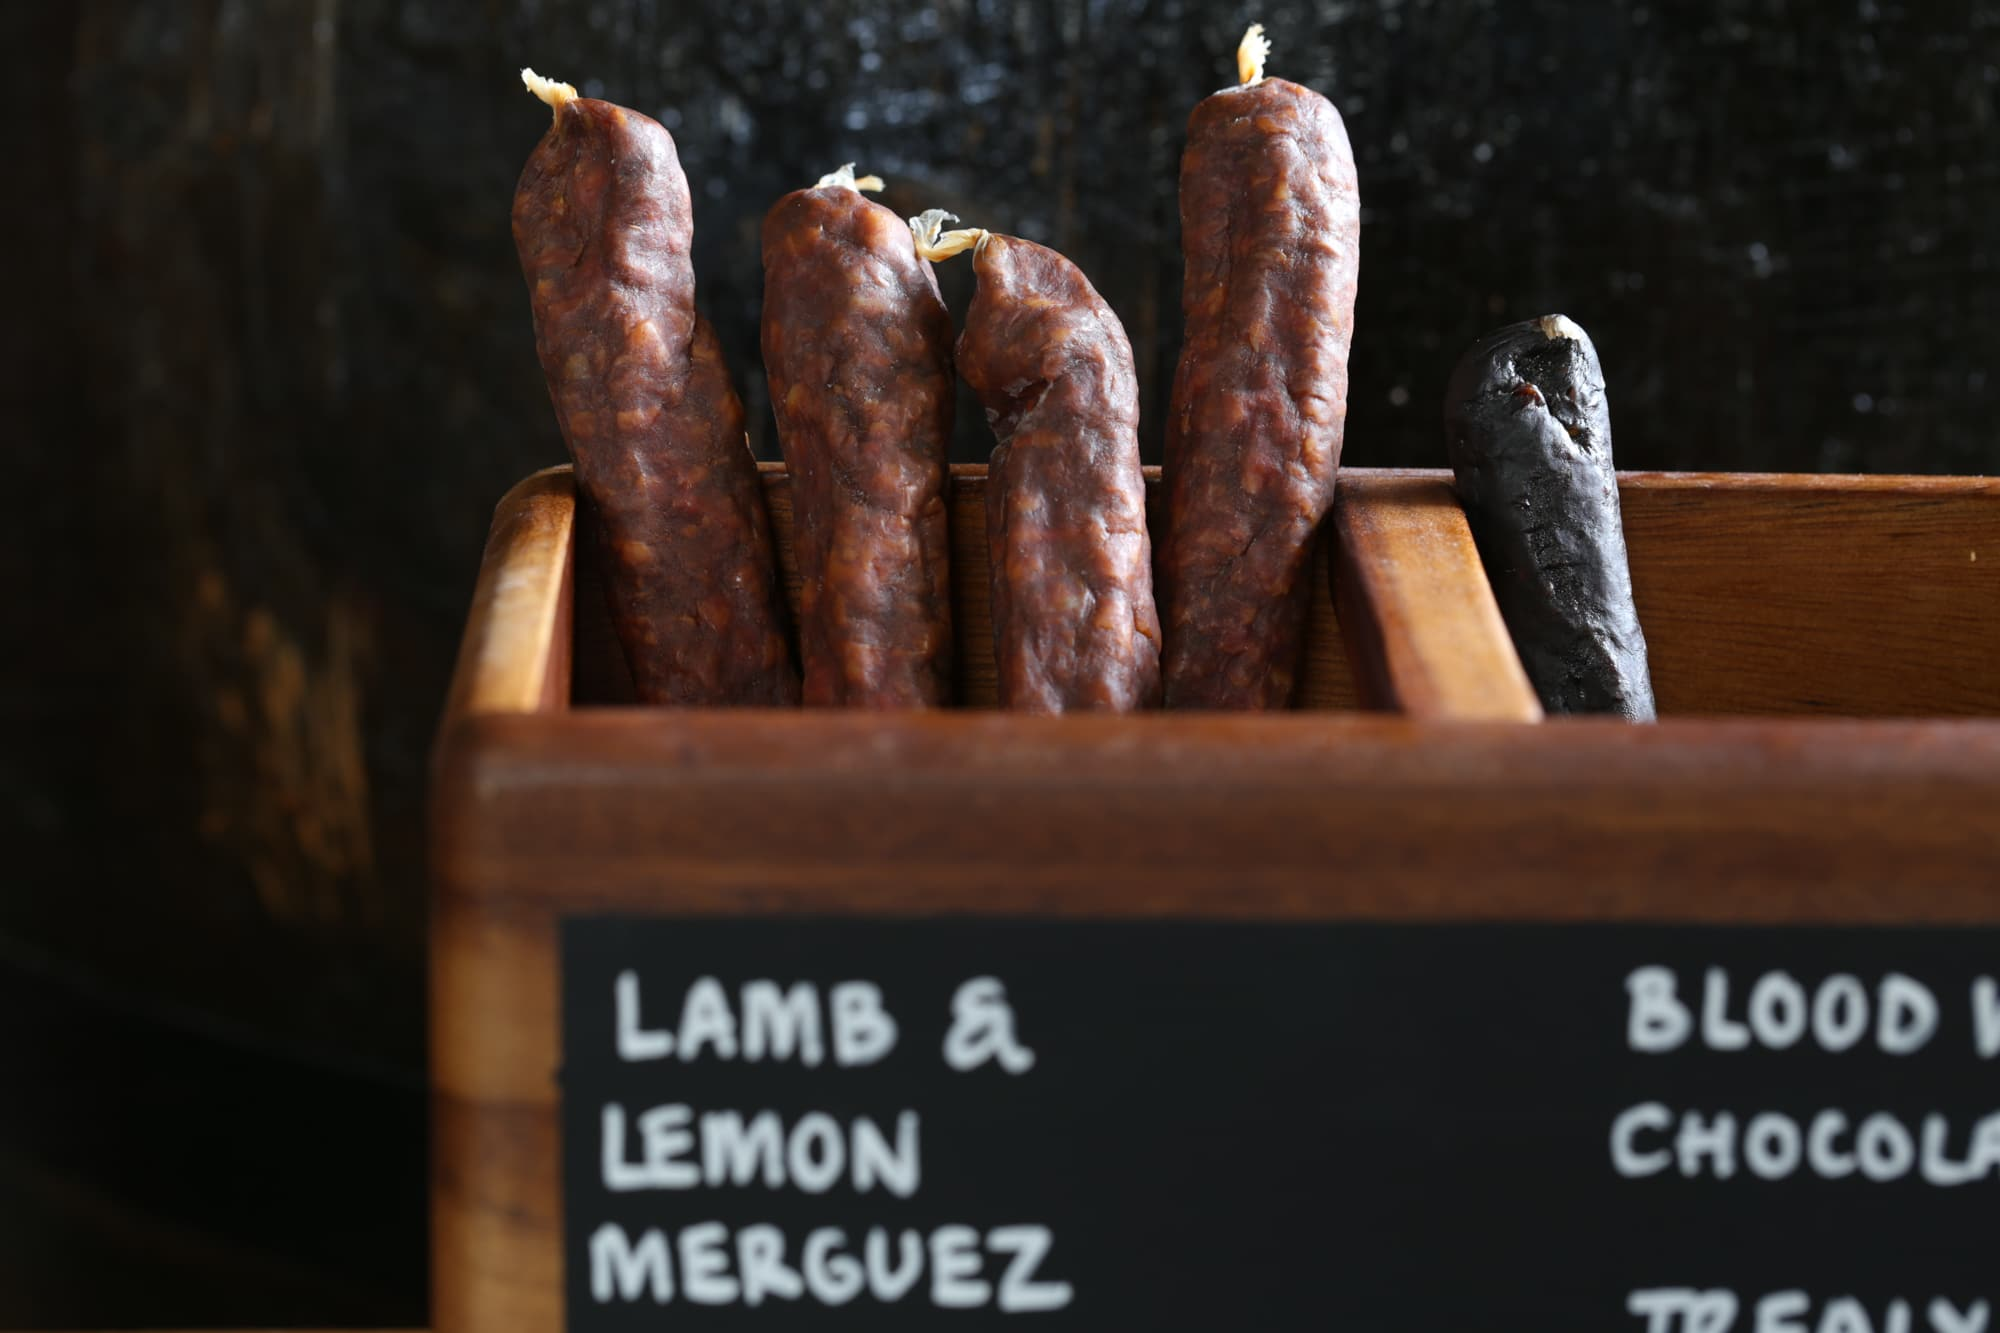 Beer sticks and salami at Great British Charcuterie